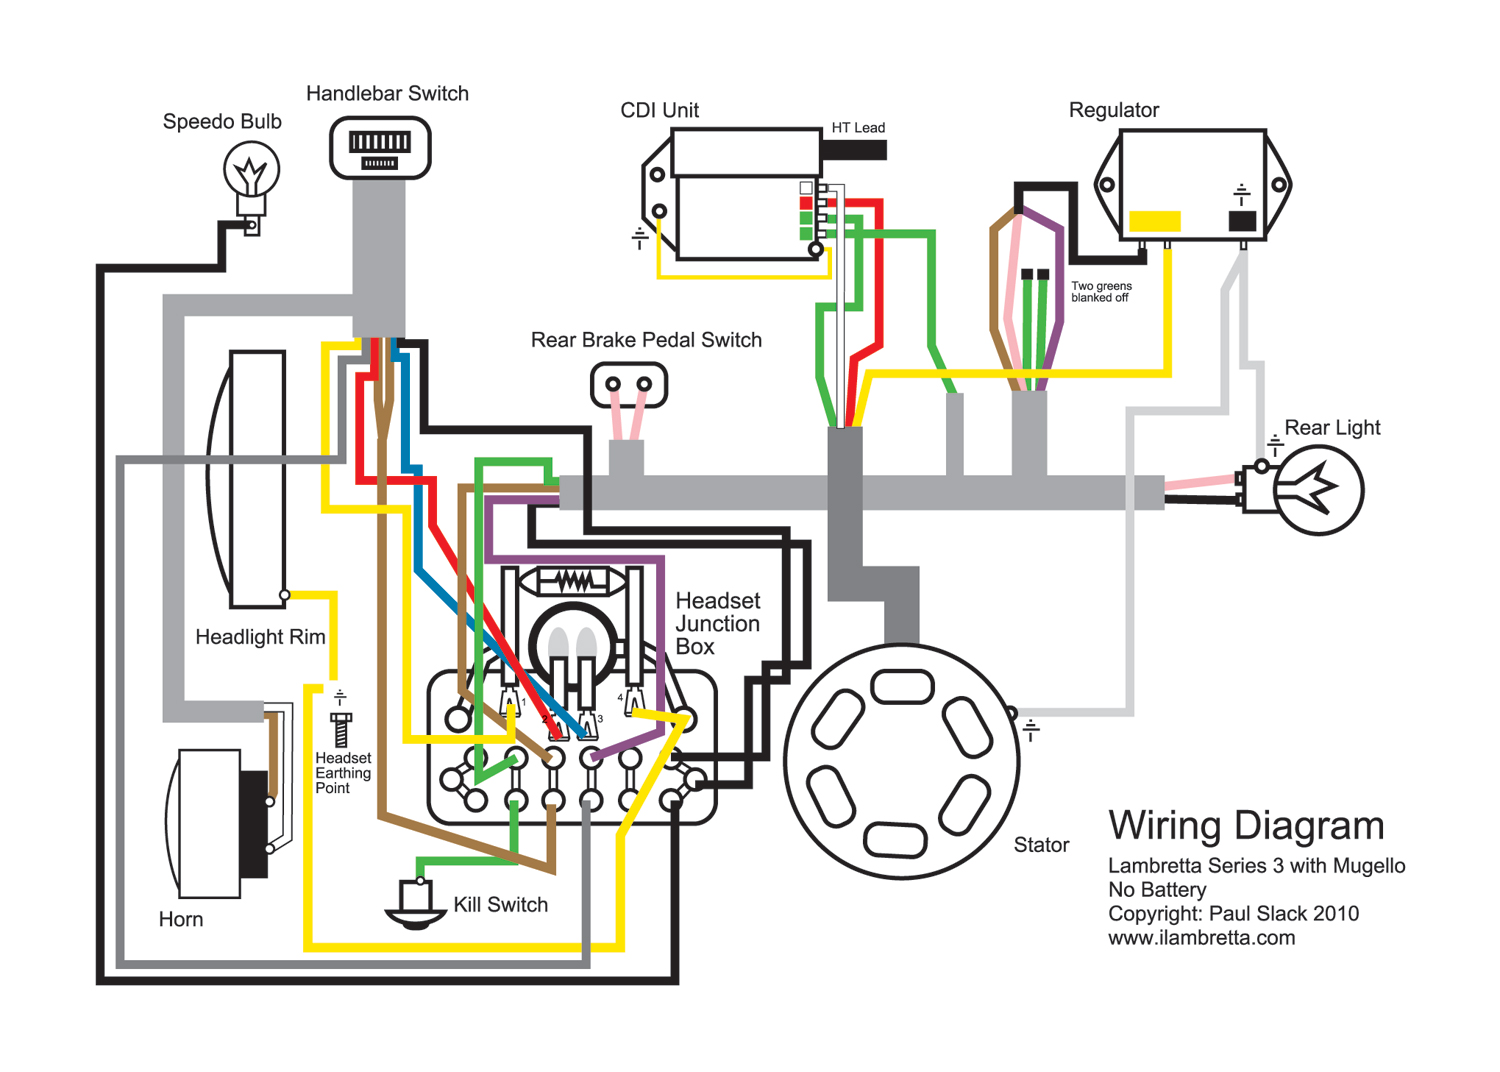 Chinese Scooter Ignition Switch Wiring Diagram - Somurich.com